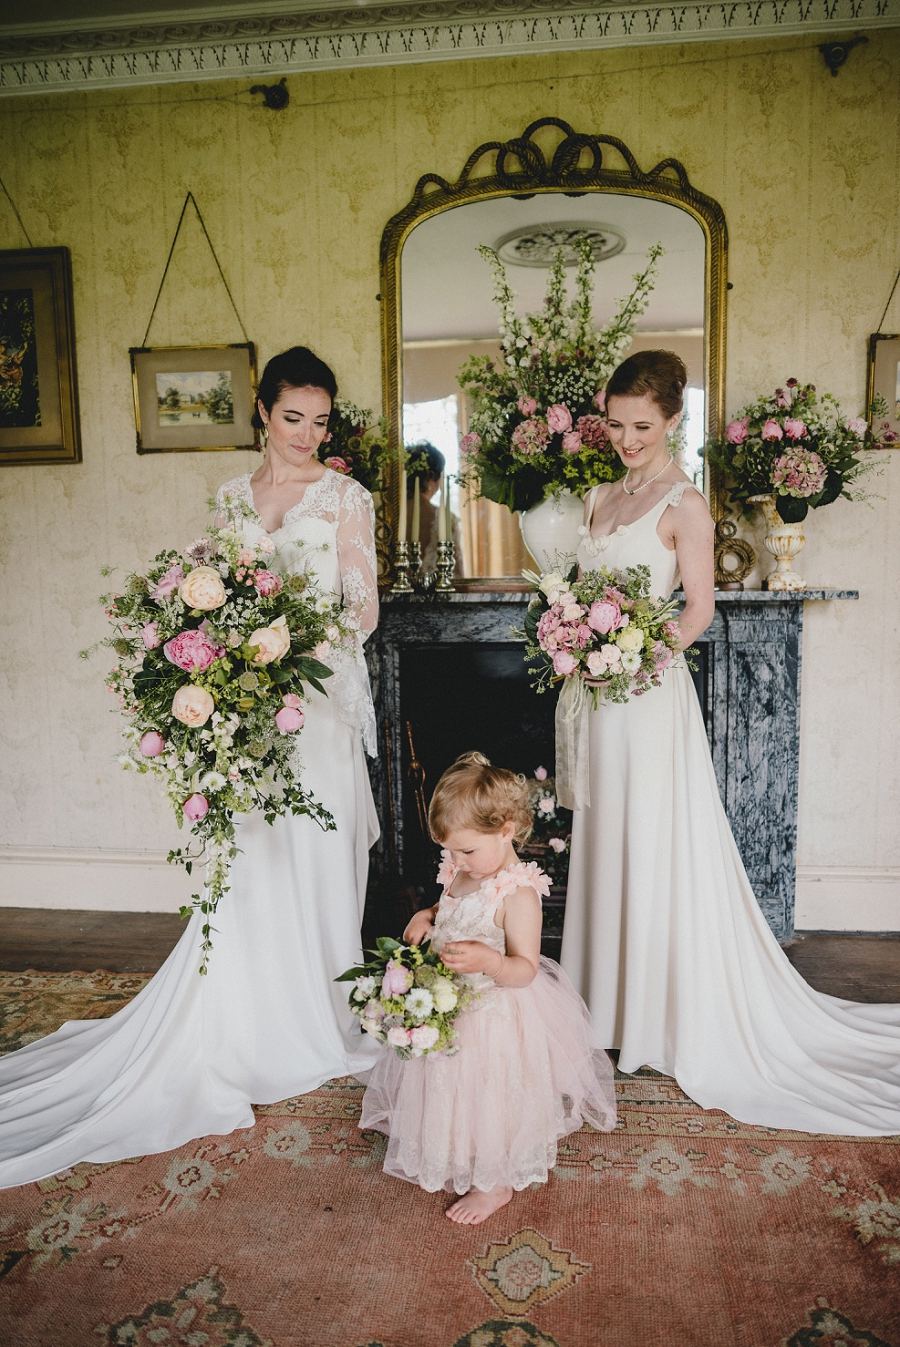 Heirloom wedding inspiration with Emily Andrews Events at Thurning Hall. Photo credit Benjamin Mathers Photography (3)